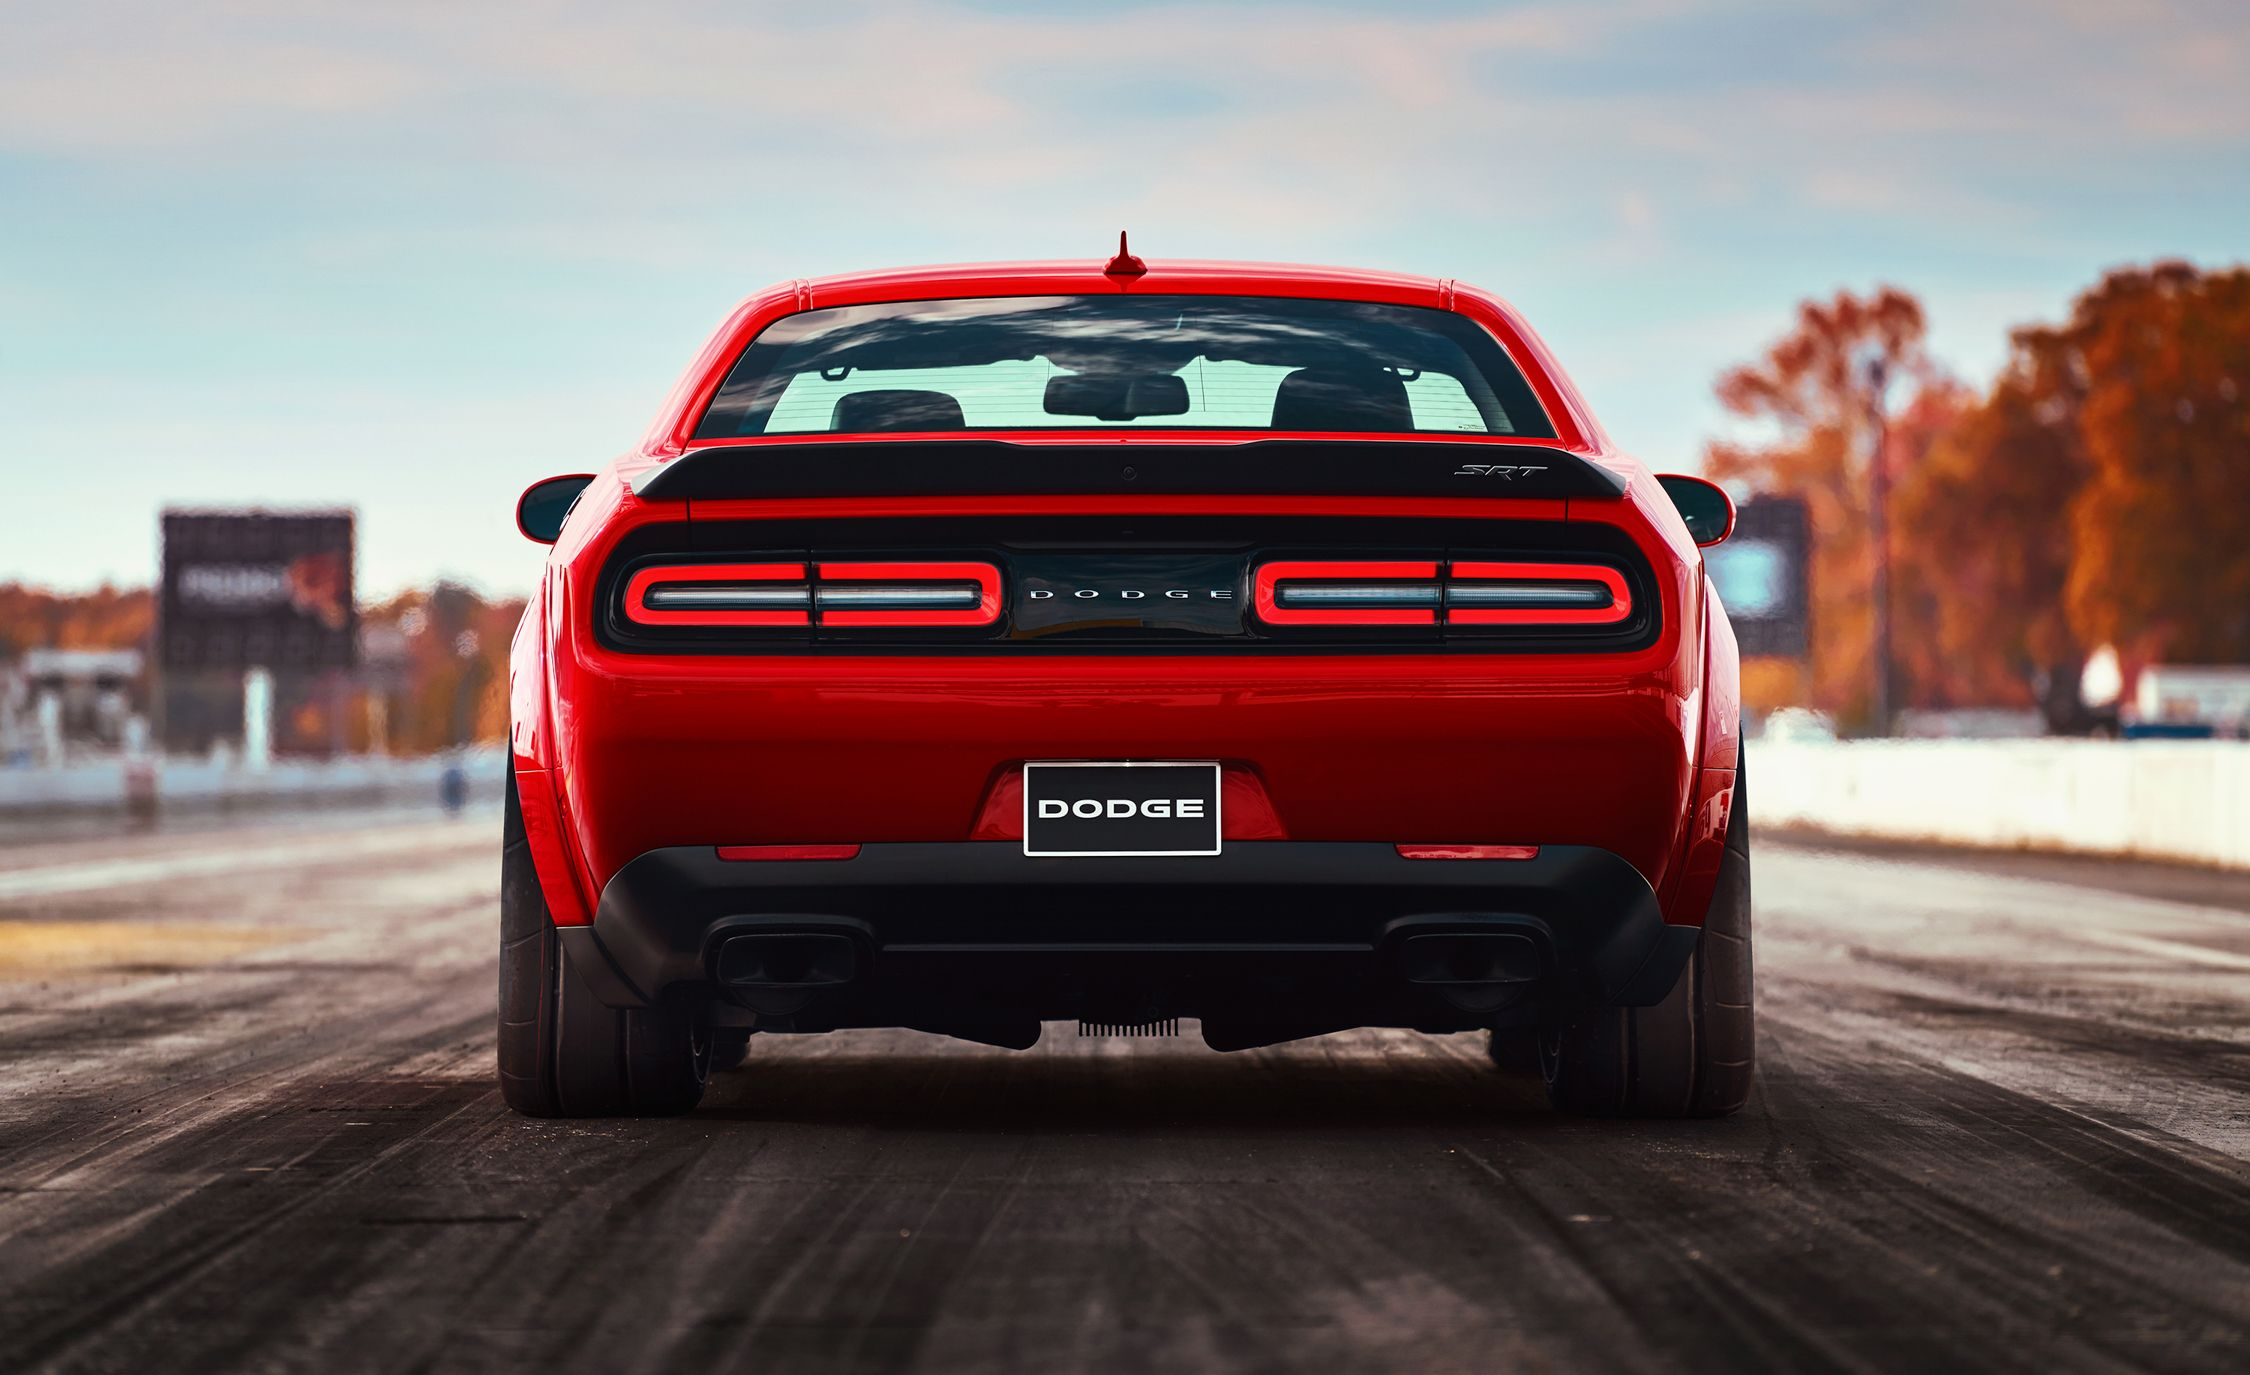 Charming Dodge Challenger SRT Demon Reviews | Dodge Challenger SRT Demon Price,  Photos, And Specs | Car And Driver